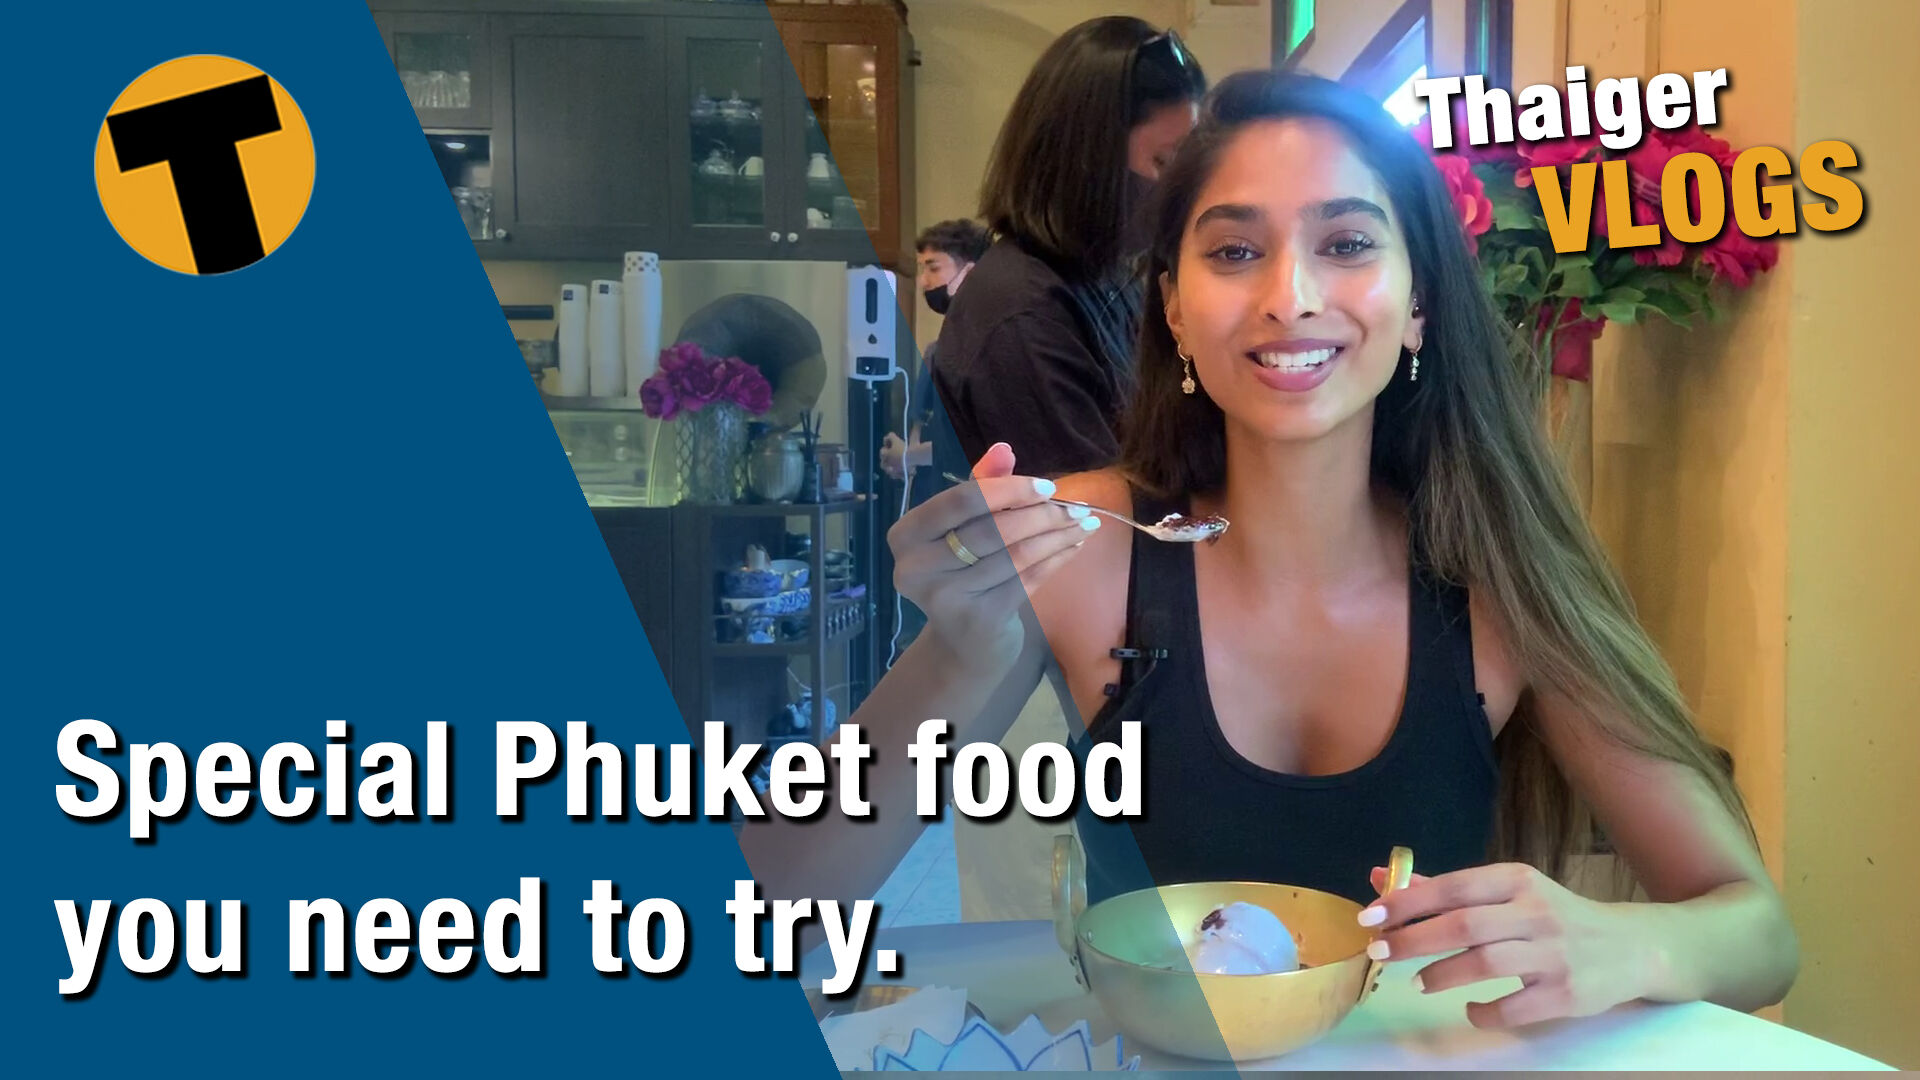 Phuket Thai food treats you need to try | VIDEO | Thaiger